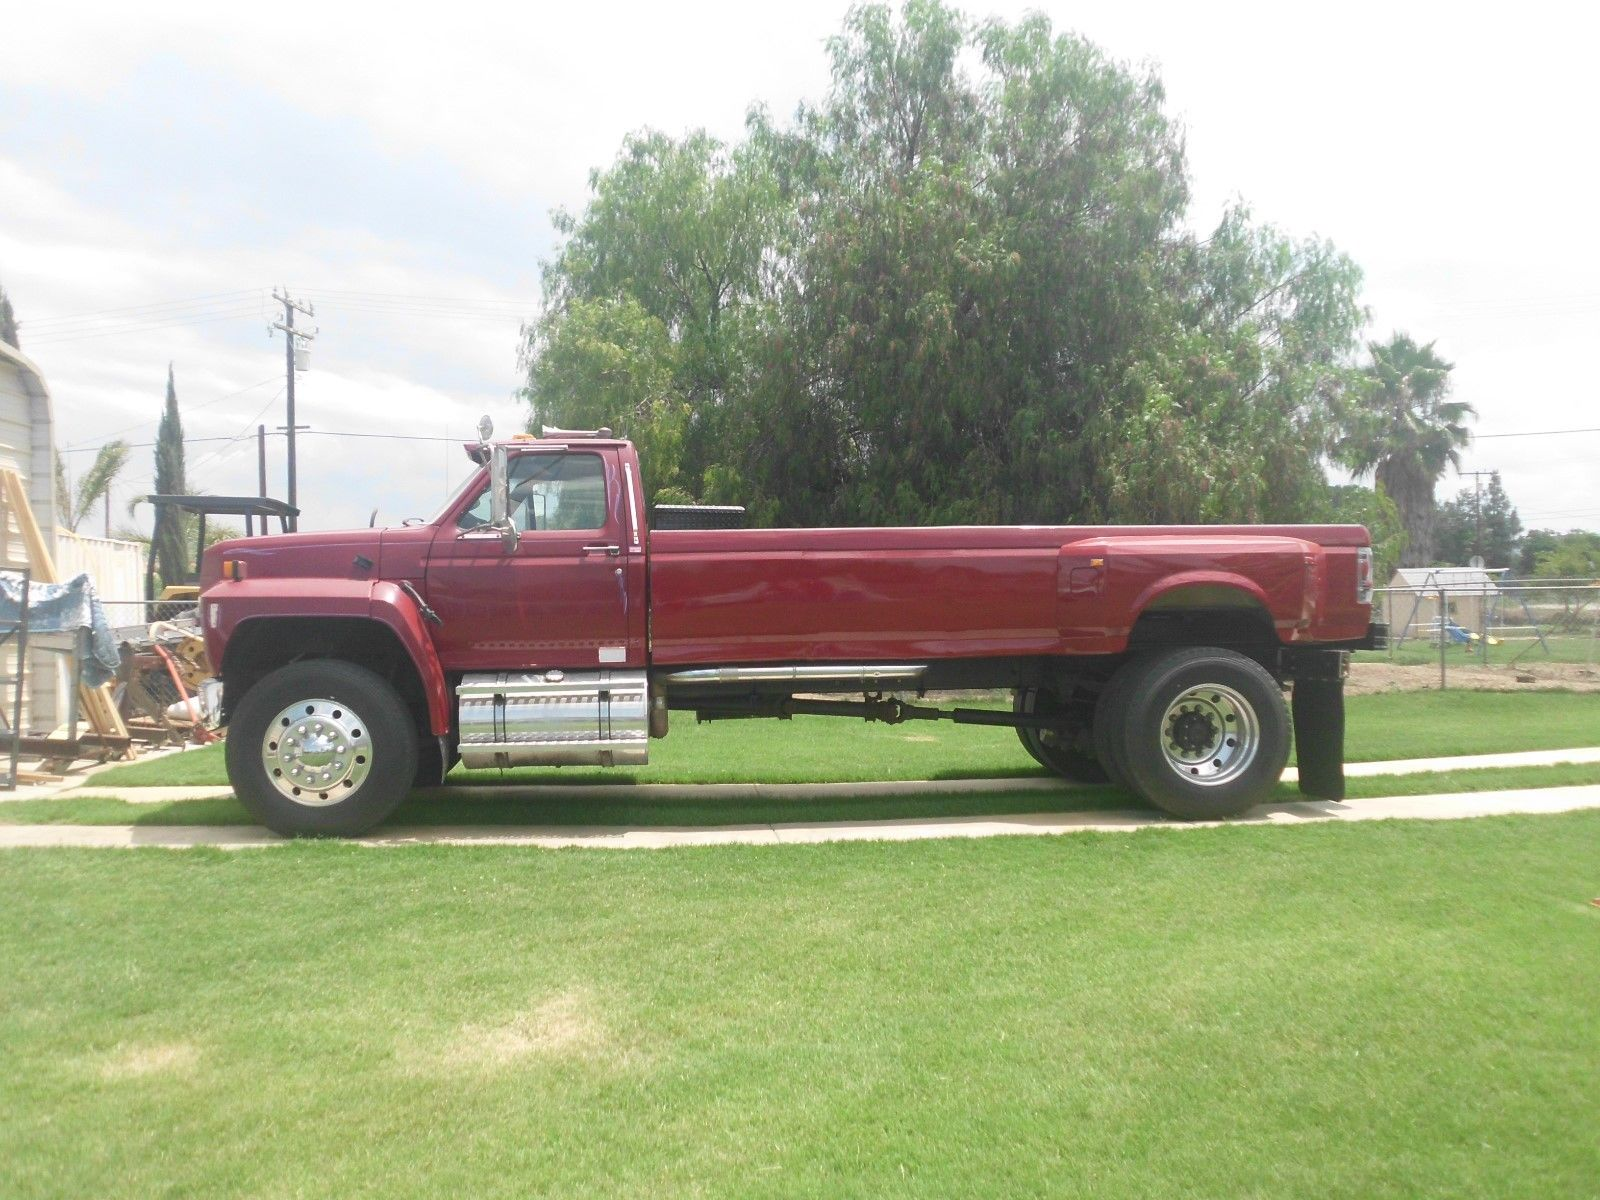 If Lohnes Doesn't Lose It For This Ford F-800, There Is No Hope Left! Check Out That Bed!